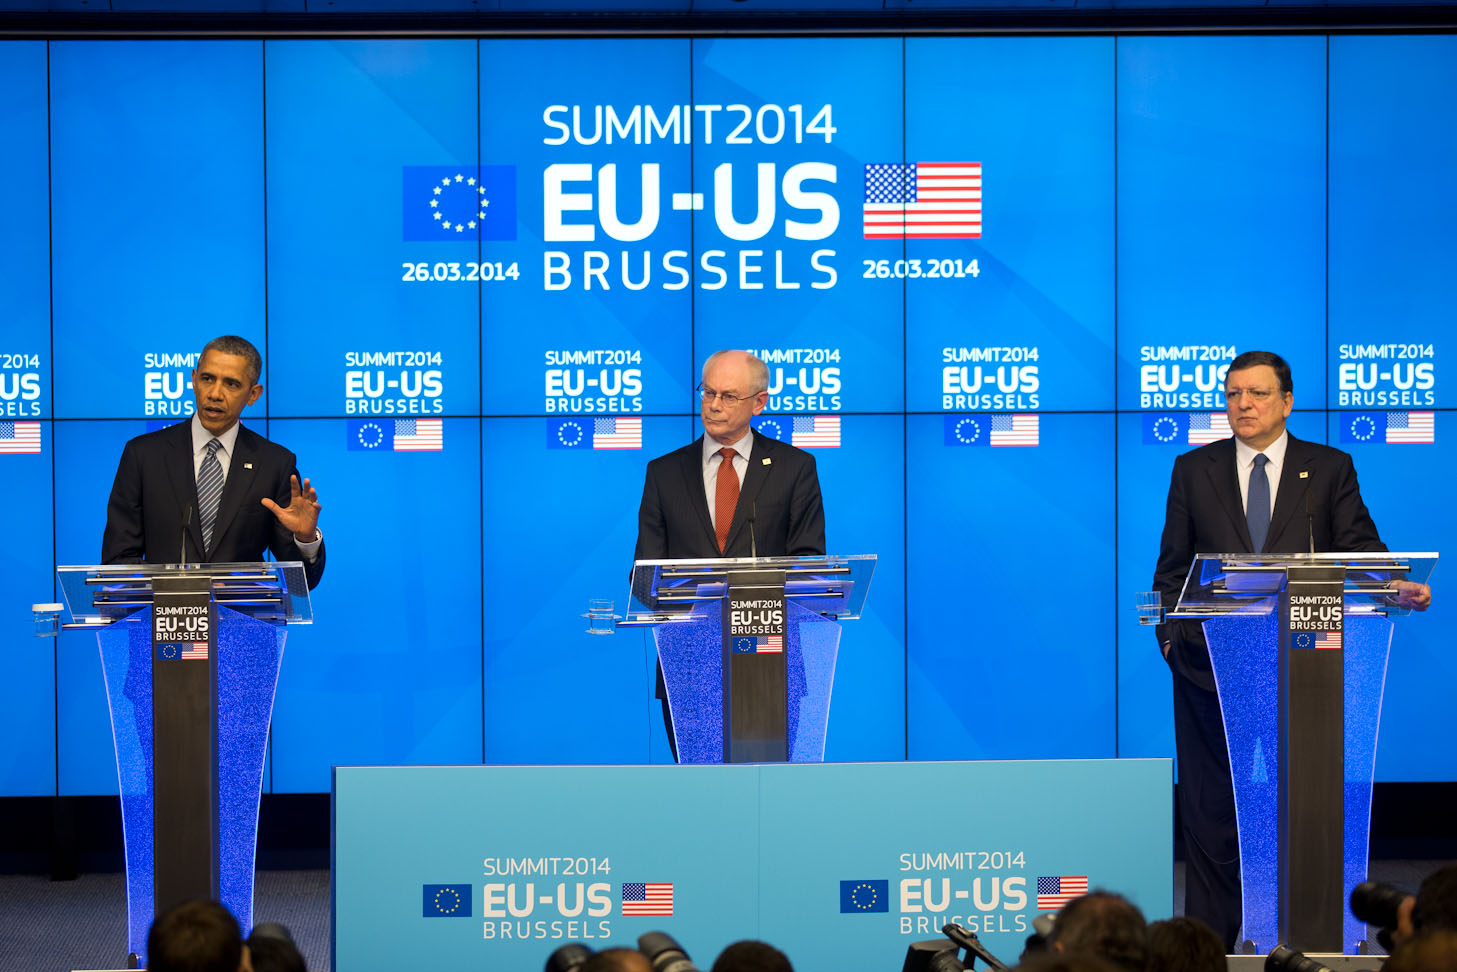 President Barack Obama, European Council President Herman Van Rompuy, and European Commission President José Manuel Barroso hold a press conference during the EU-U.S. Summit at the Council of the European Union in Brussels, Belgium, March 26, 2014.